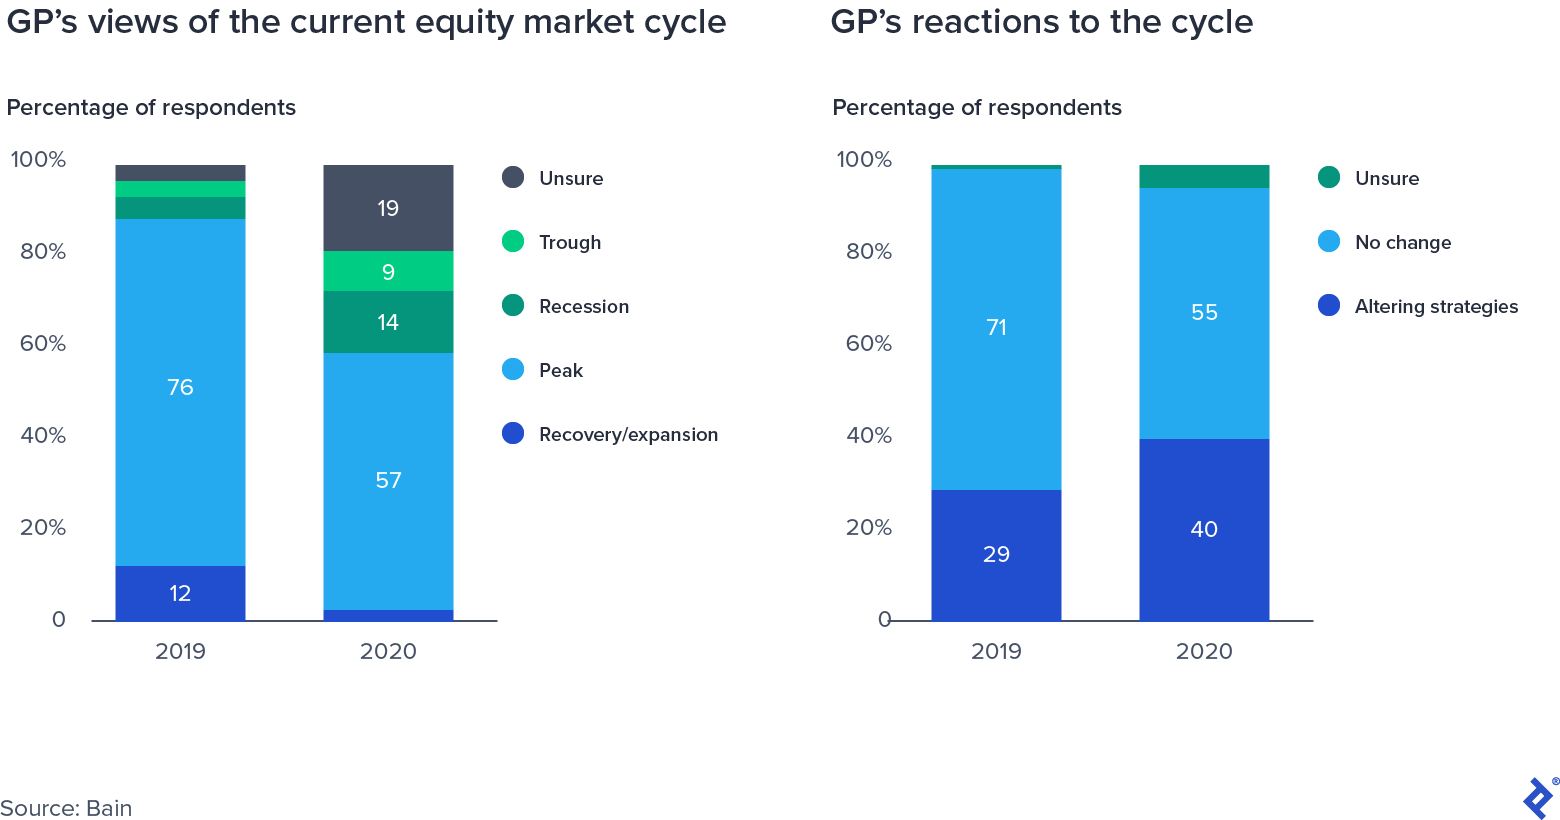 GP's Survey Responses on Equity Market Cycle